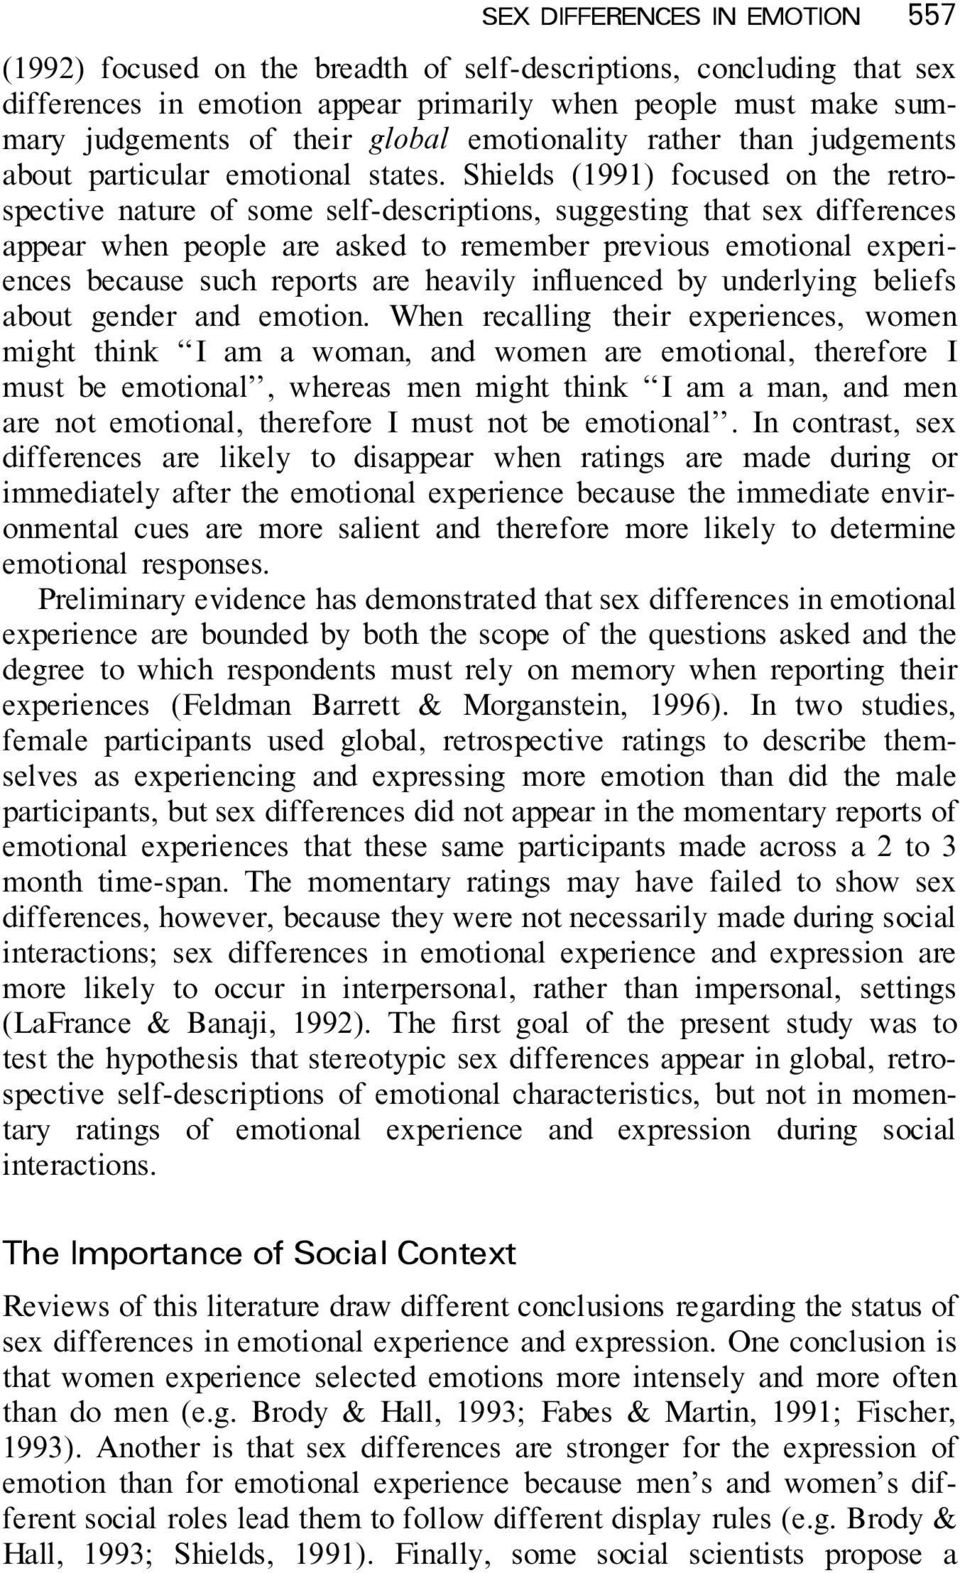 Shields (1991) focused on the retrospective nature of some self-descriptions, suggesting that sex differences appear when people are asked to remember previous emotional experiences because such